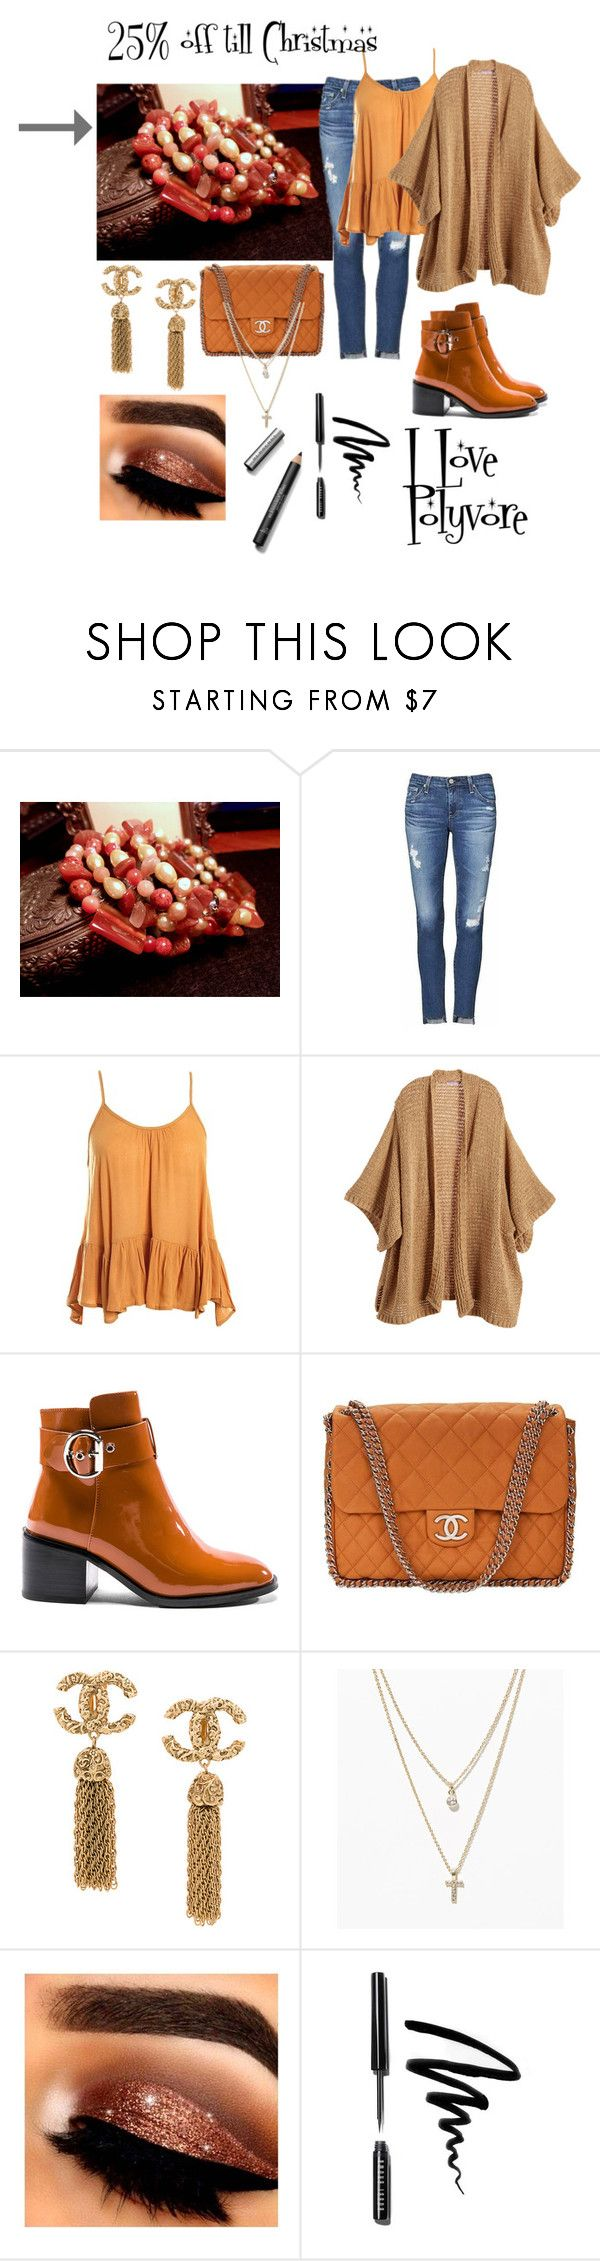 """""""Beaded Memory Wrap Bracelet-Red Agate-Carnelian-MOP-Gemstone-Bohemian-Cuff Bracelet-Agate Wrap Bracelet-Fresh Water Pearls Bracelet"""" by bamasbabes on Polyvore featuring AG Adriano Goldschmied, Sans Souci, Calypso St. Barth, Jeffrey Campbell, Chanel, LOFT, Bobbi Brown Cosmetics, Burberry, Christmas and jewelry"""